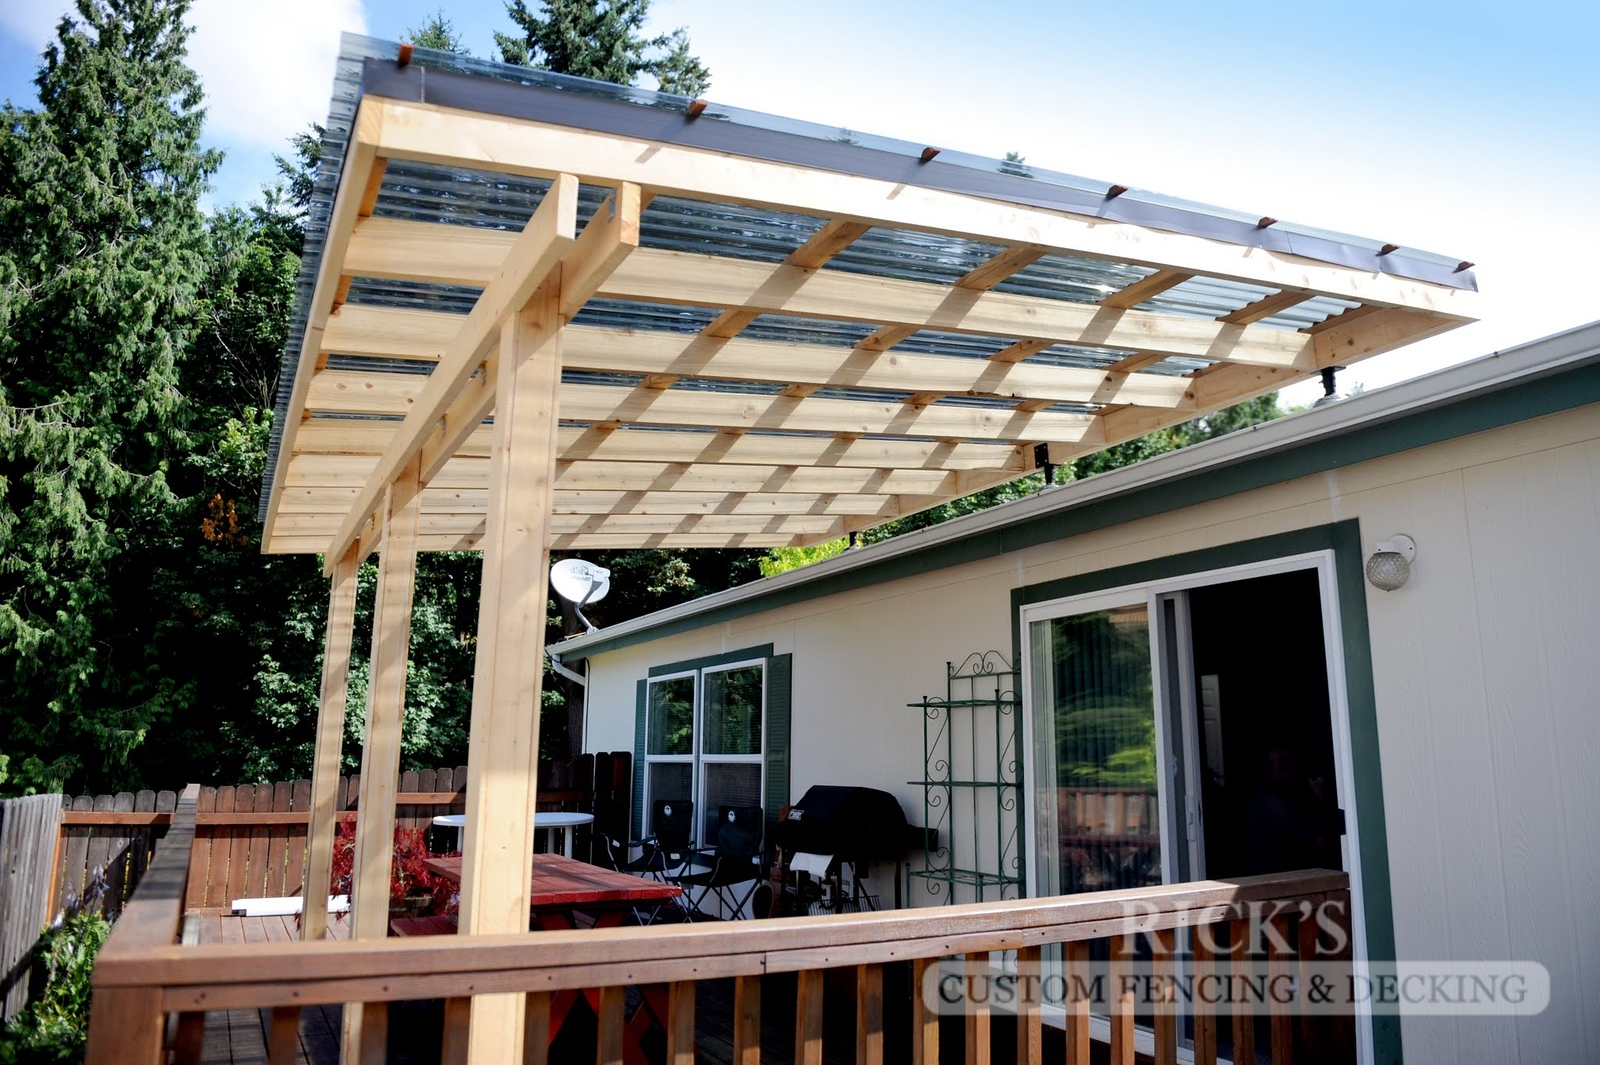 5133 - Wood-Framed Patio Cover with Acrylic Paneling